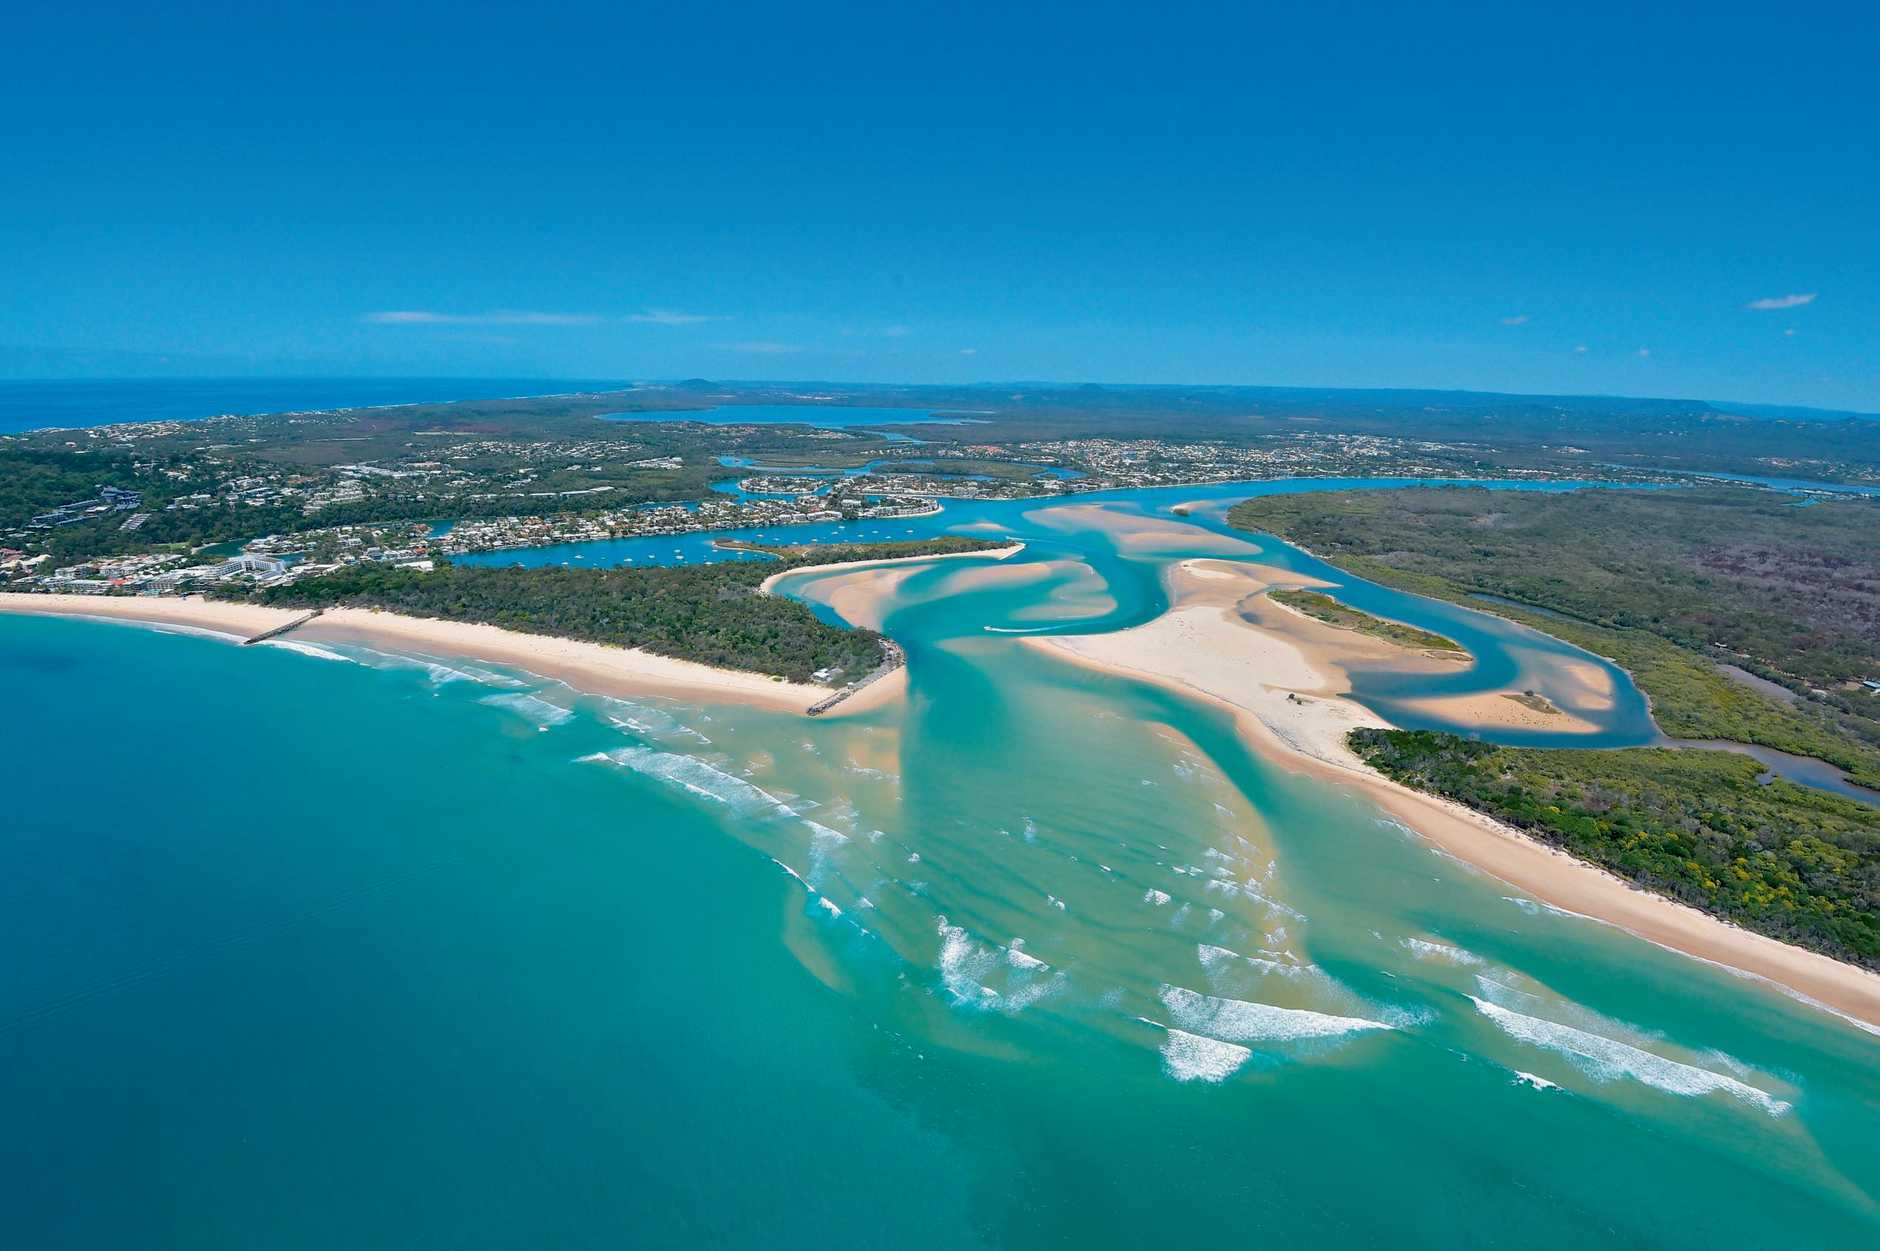 In a legal stoush where the bill is expected to run into tens of thousands of dollars, the body corporate of the exclusive 10-unit Hilton Park apartment complex on the Noosa River voted 8-2 to ban any rentals of less than six months.